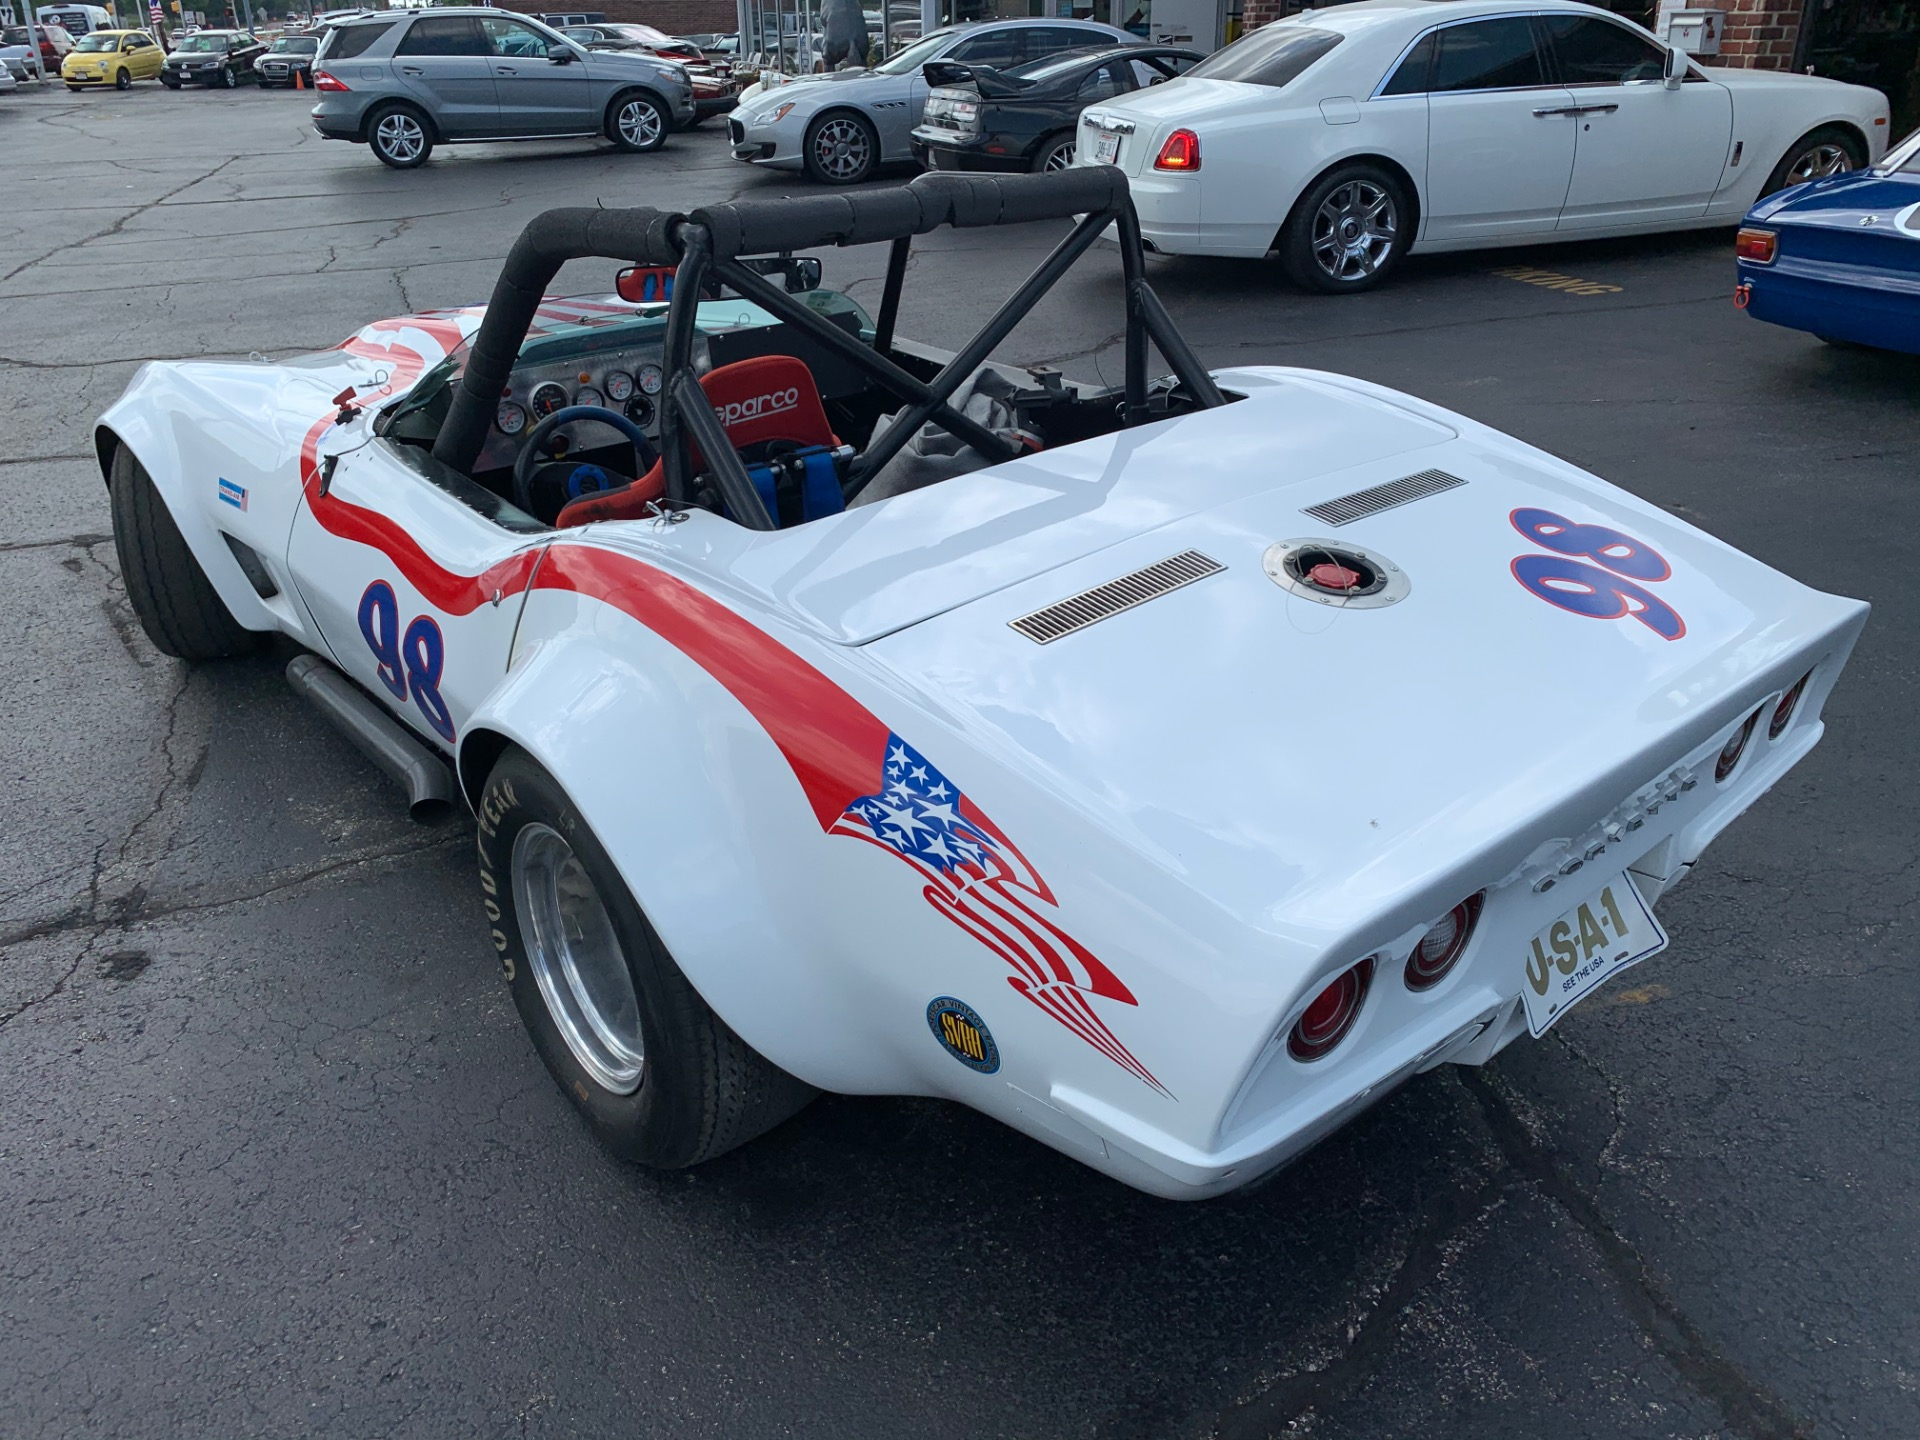 Used-1968-Chevrolet-Corvette-Roadster-Race-Car-C3